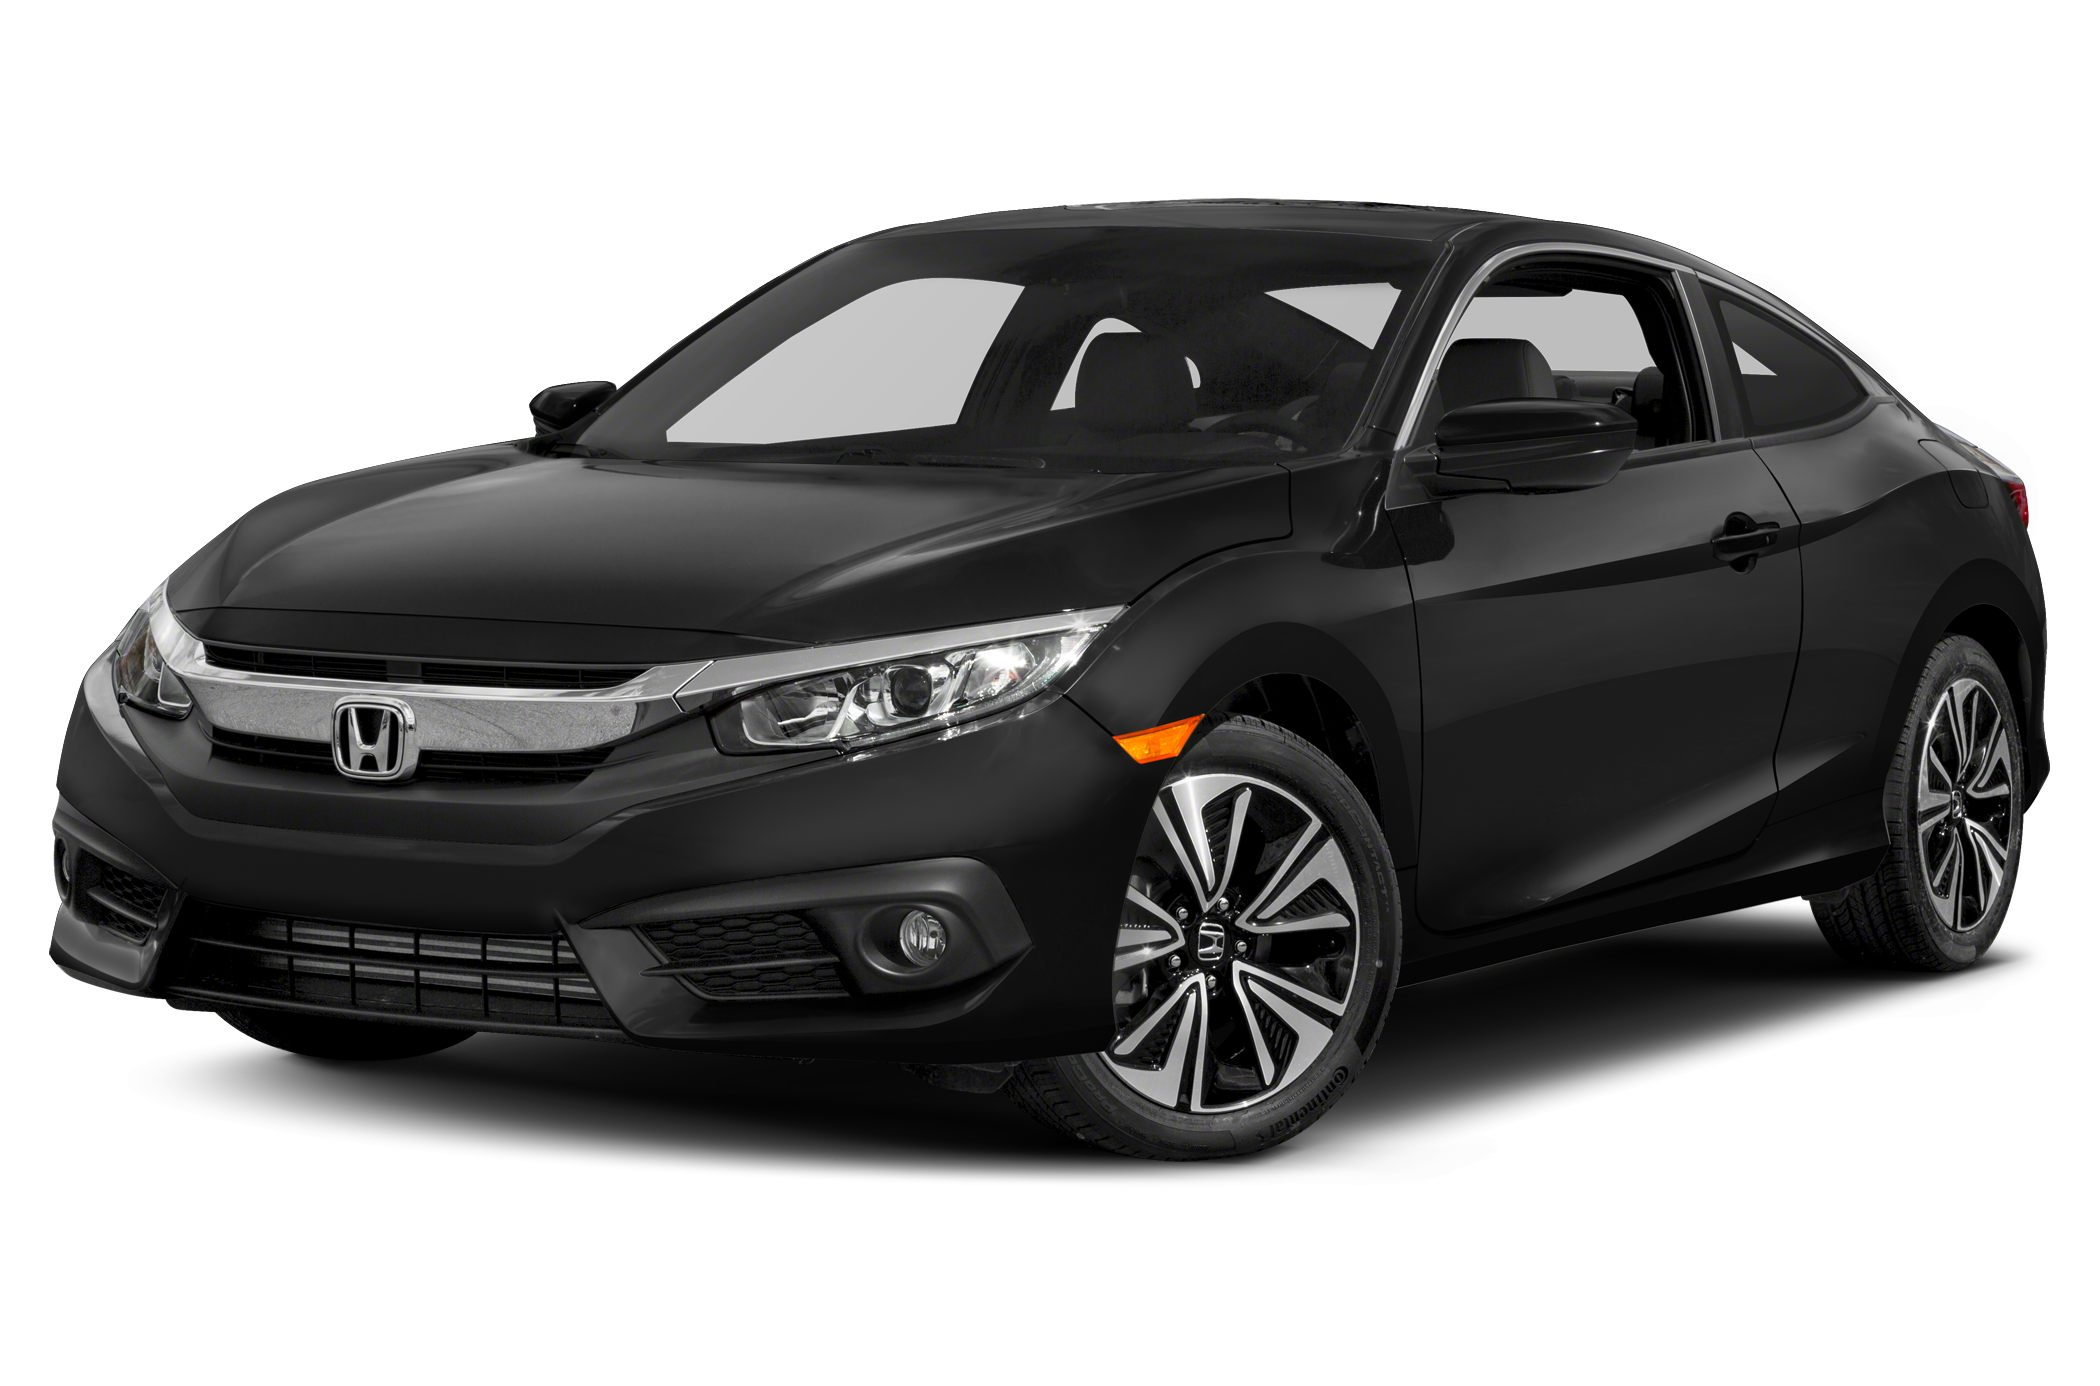 2016 Honda Civic EX-T Talk about performance Honest pricing makes this a practical purchase Buy